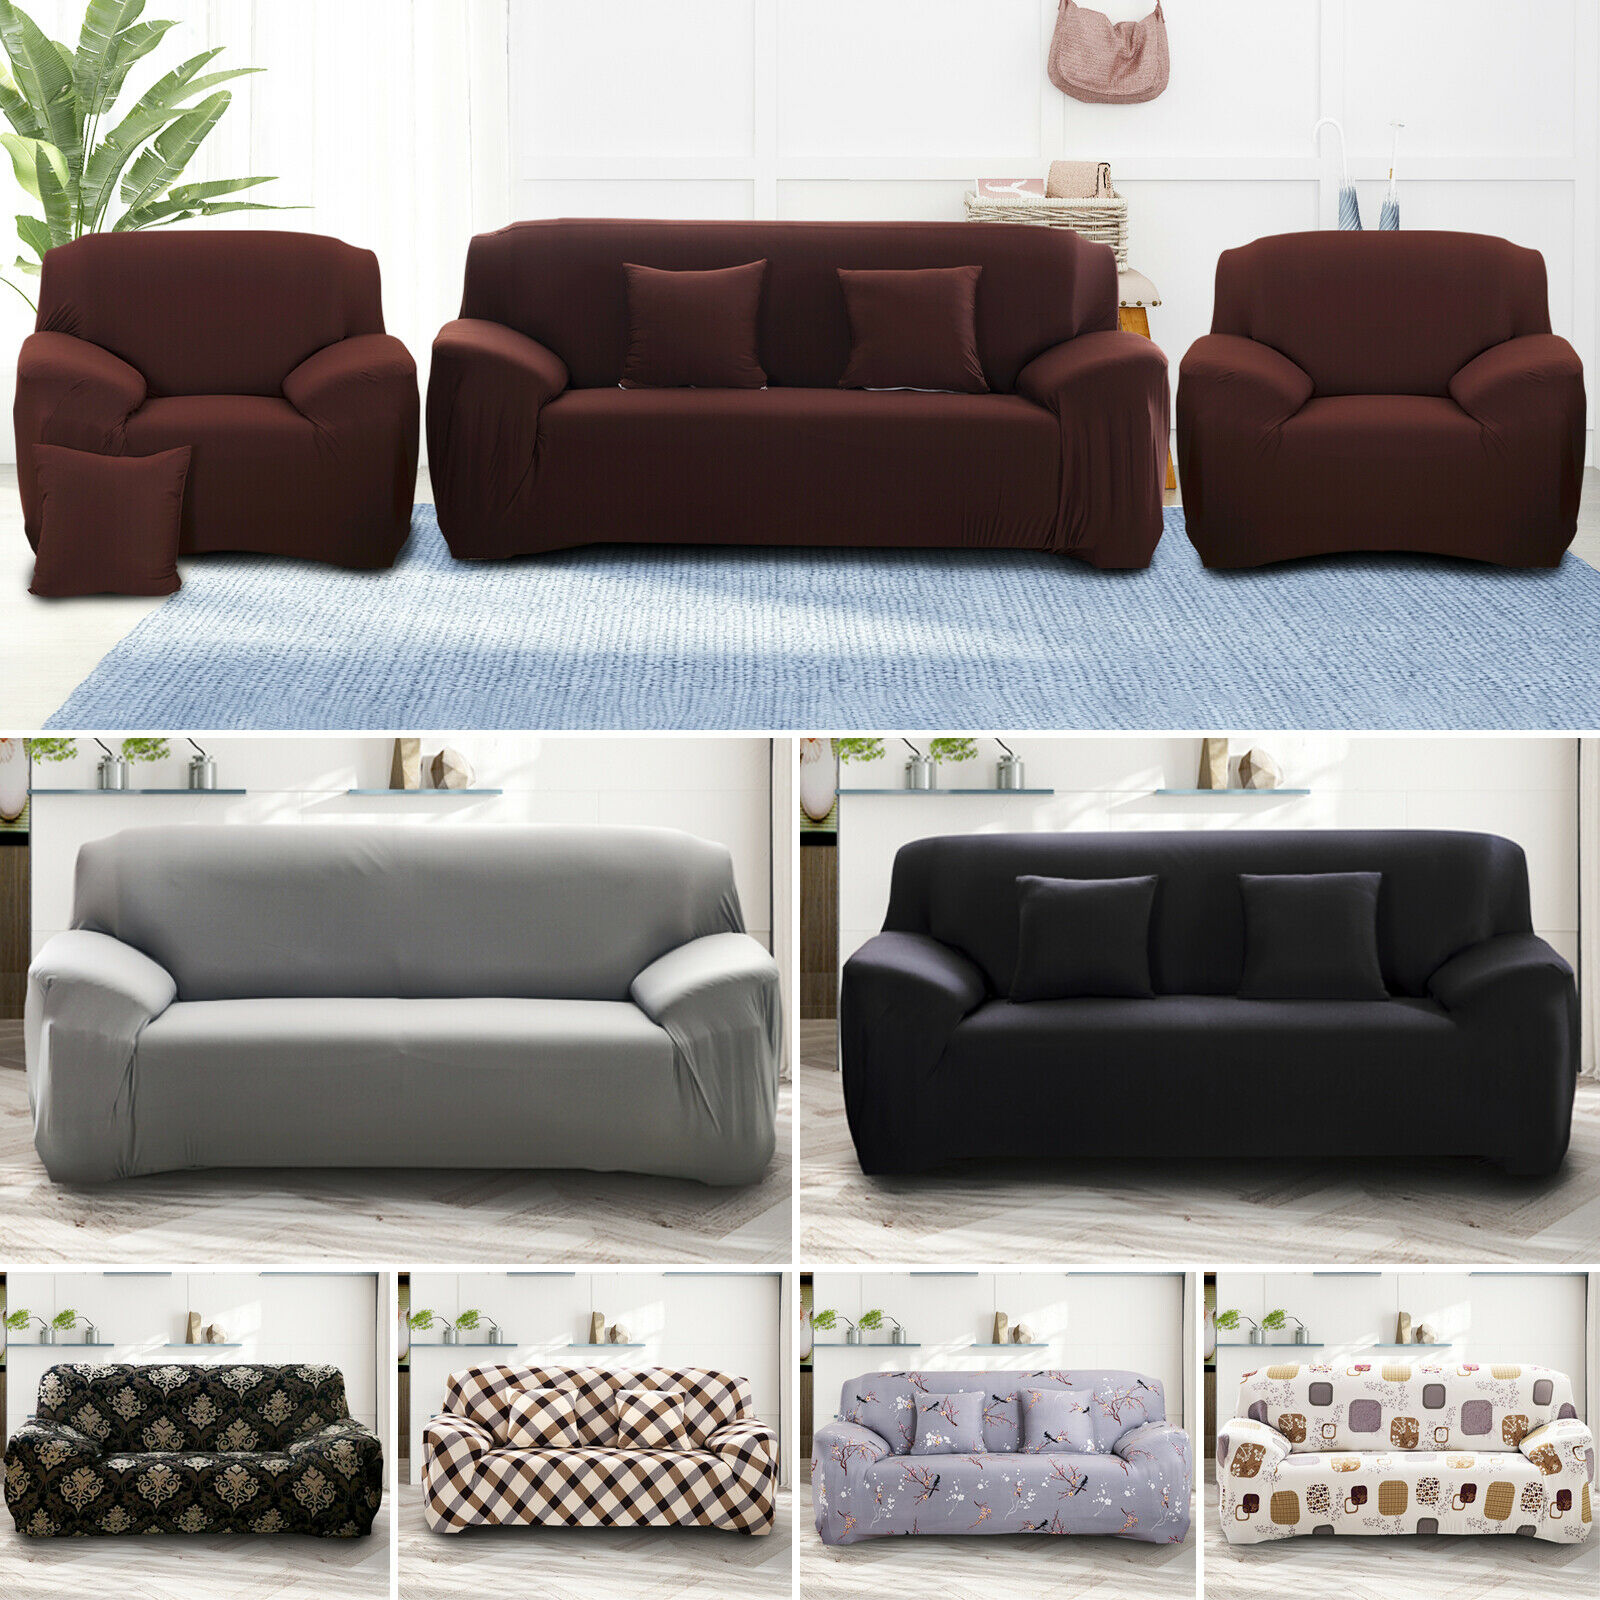 Jacquard Sofa Couch Slipcover Stretch Covers Elastic Fabric Settee Protector